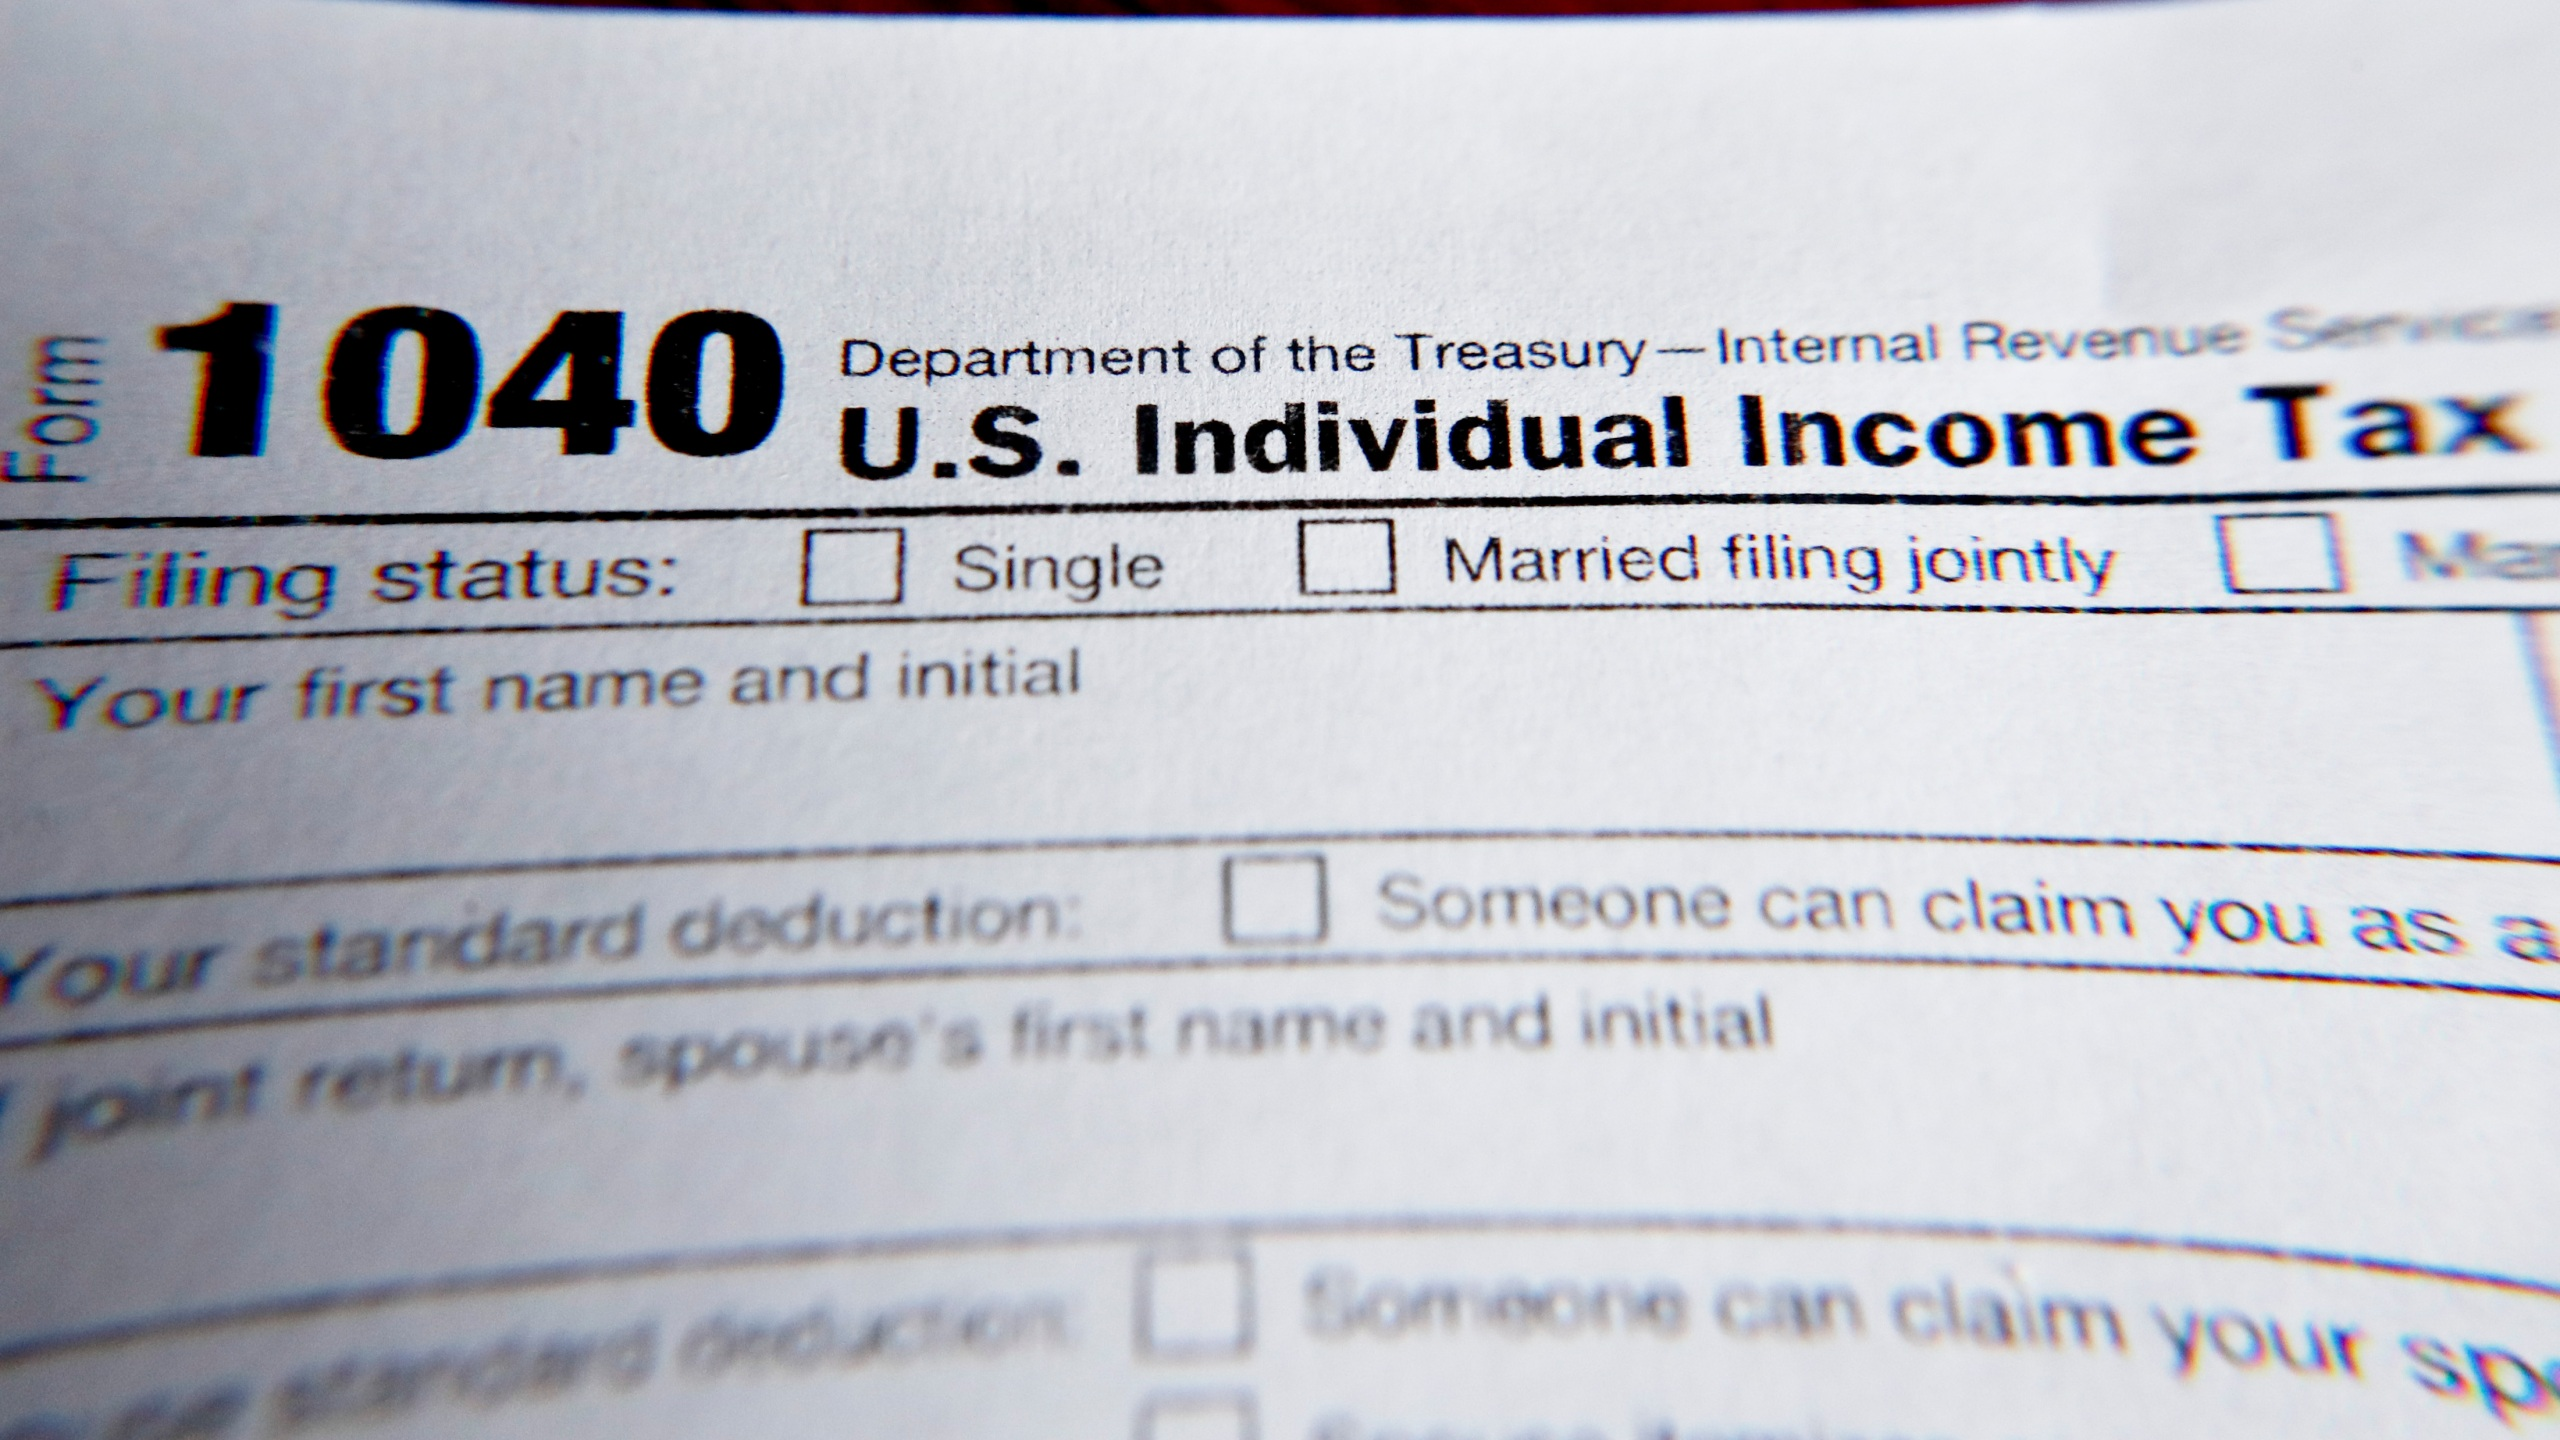 This Wednesday, Feb. 13, 2019 file photo shows part of a 1040 federal tax form printed from the Internal Revenue Service website, in Zelienople, Pa. Tax filing season will start a bit later and look a bit different this year. That's because the pandemic that defined 2020 has seeped into tax time as well. If you worked from home, received a relief payment, took on some gig work or filed unemployment benefits _ or someone filed a fake claim in your name _ there are things you need to be aware of. Likewise if you normally receive certain tax credits. The IRS will begin accepting tax returns on Feb. 12, 2021. (AP Photo/Keith Srakocic, File)